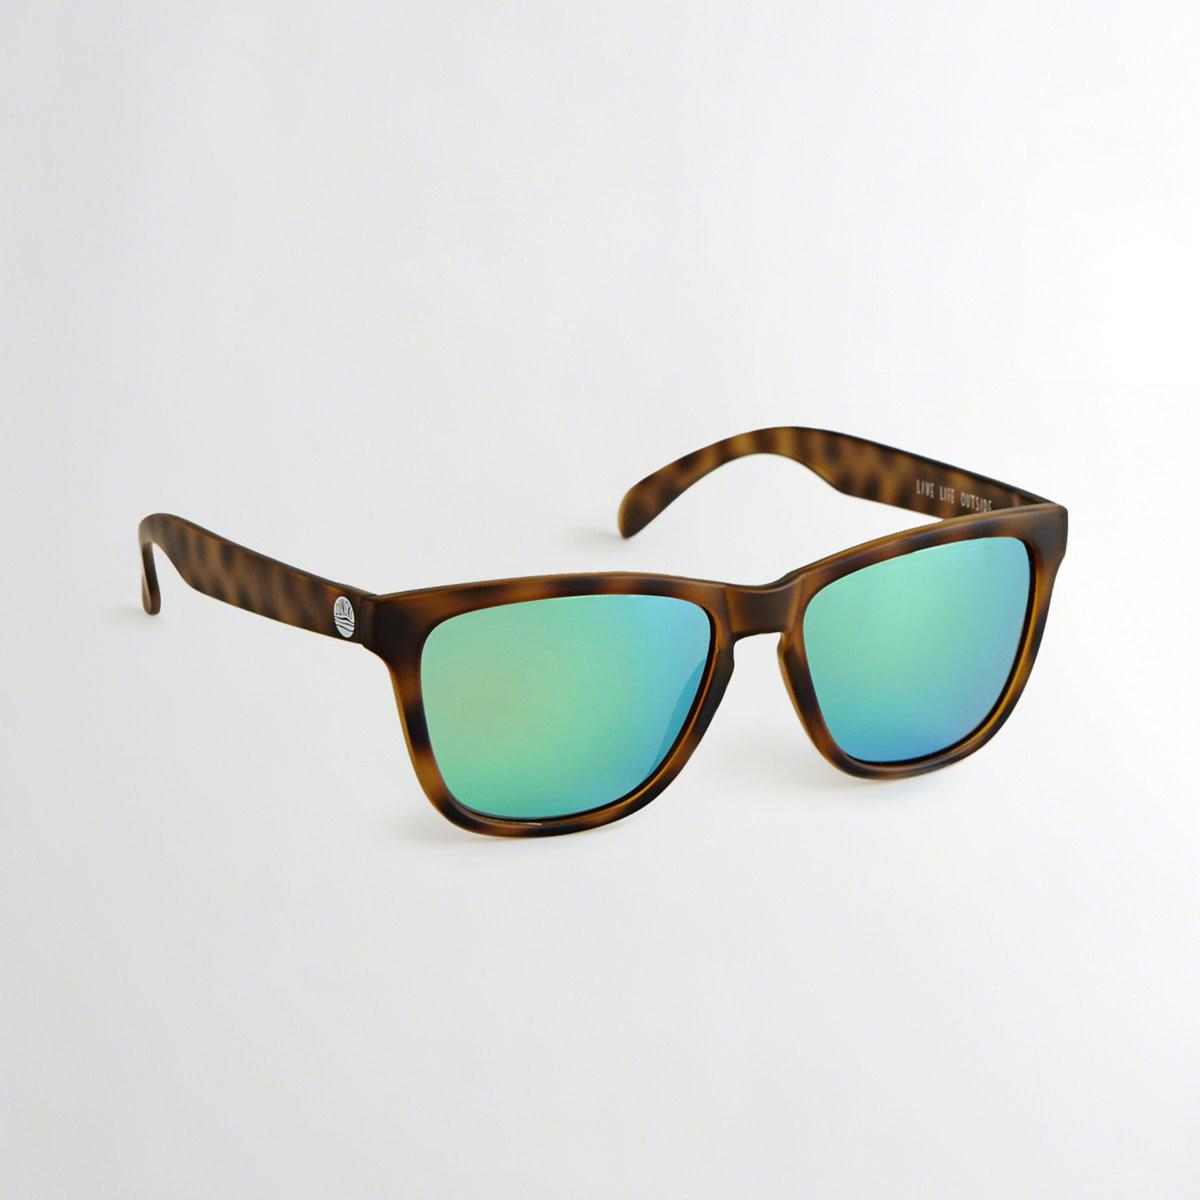 aae67ae3b3b Hollister Guys Sunski Madrona Sunglasses From Hollister in Green for ...